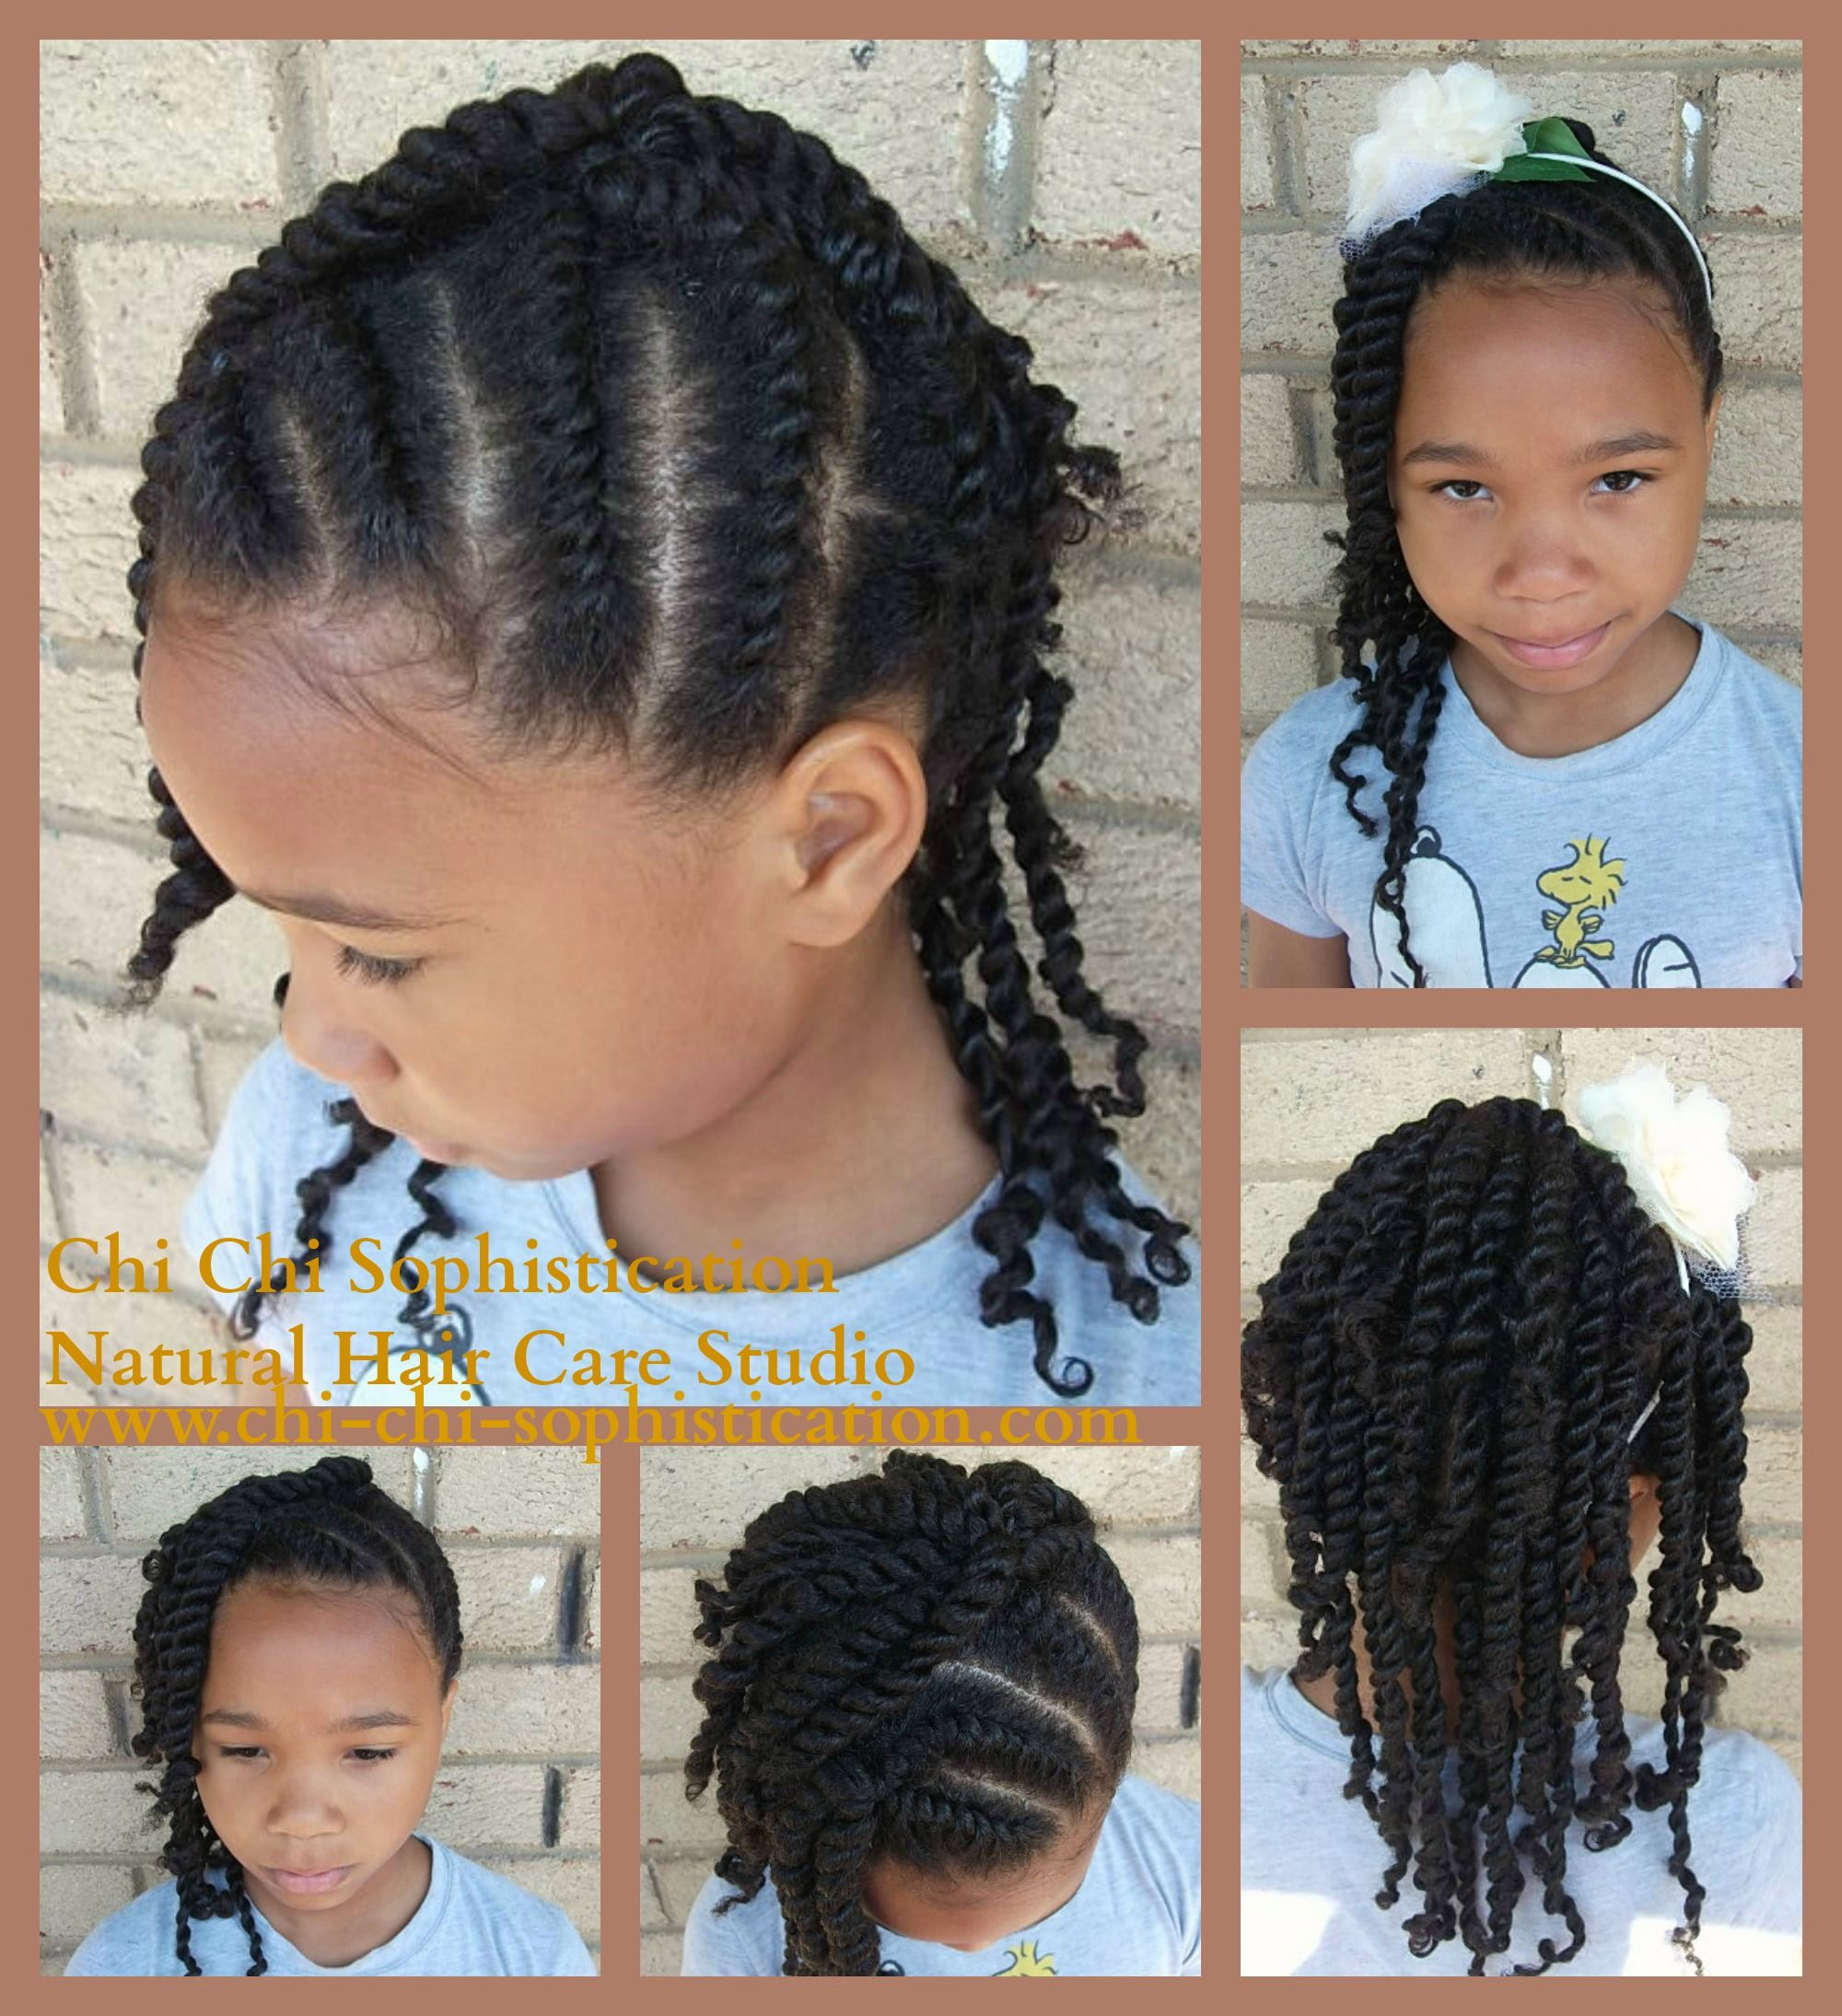 Pin By Chi Chi Sophistication Natural On Children Hair Styles By Chi Chi Sophistication Natural Hair Studio Kids Braided Hairstyles Hair Styles Lil Girl Hairstyles